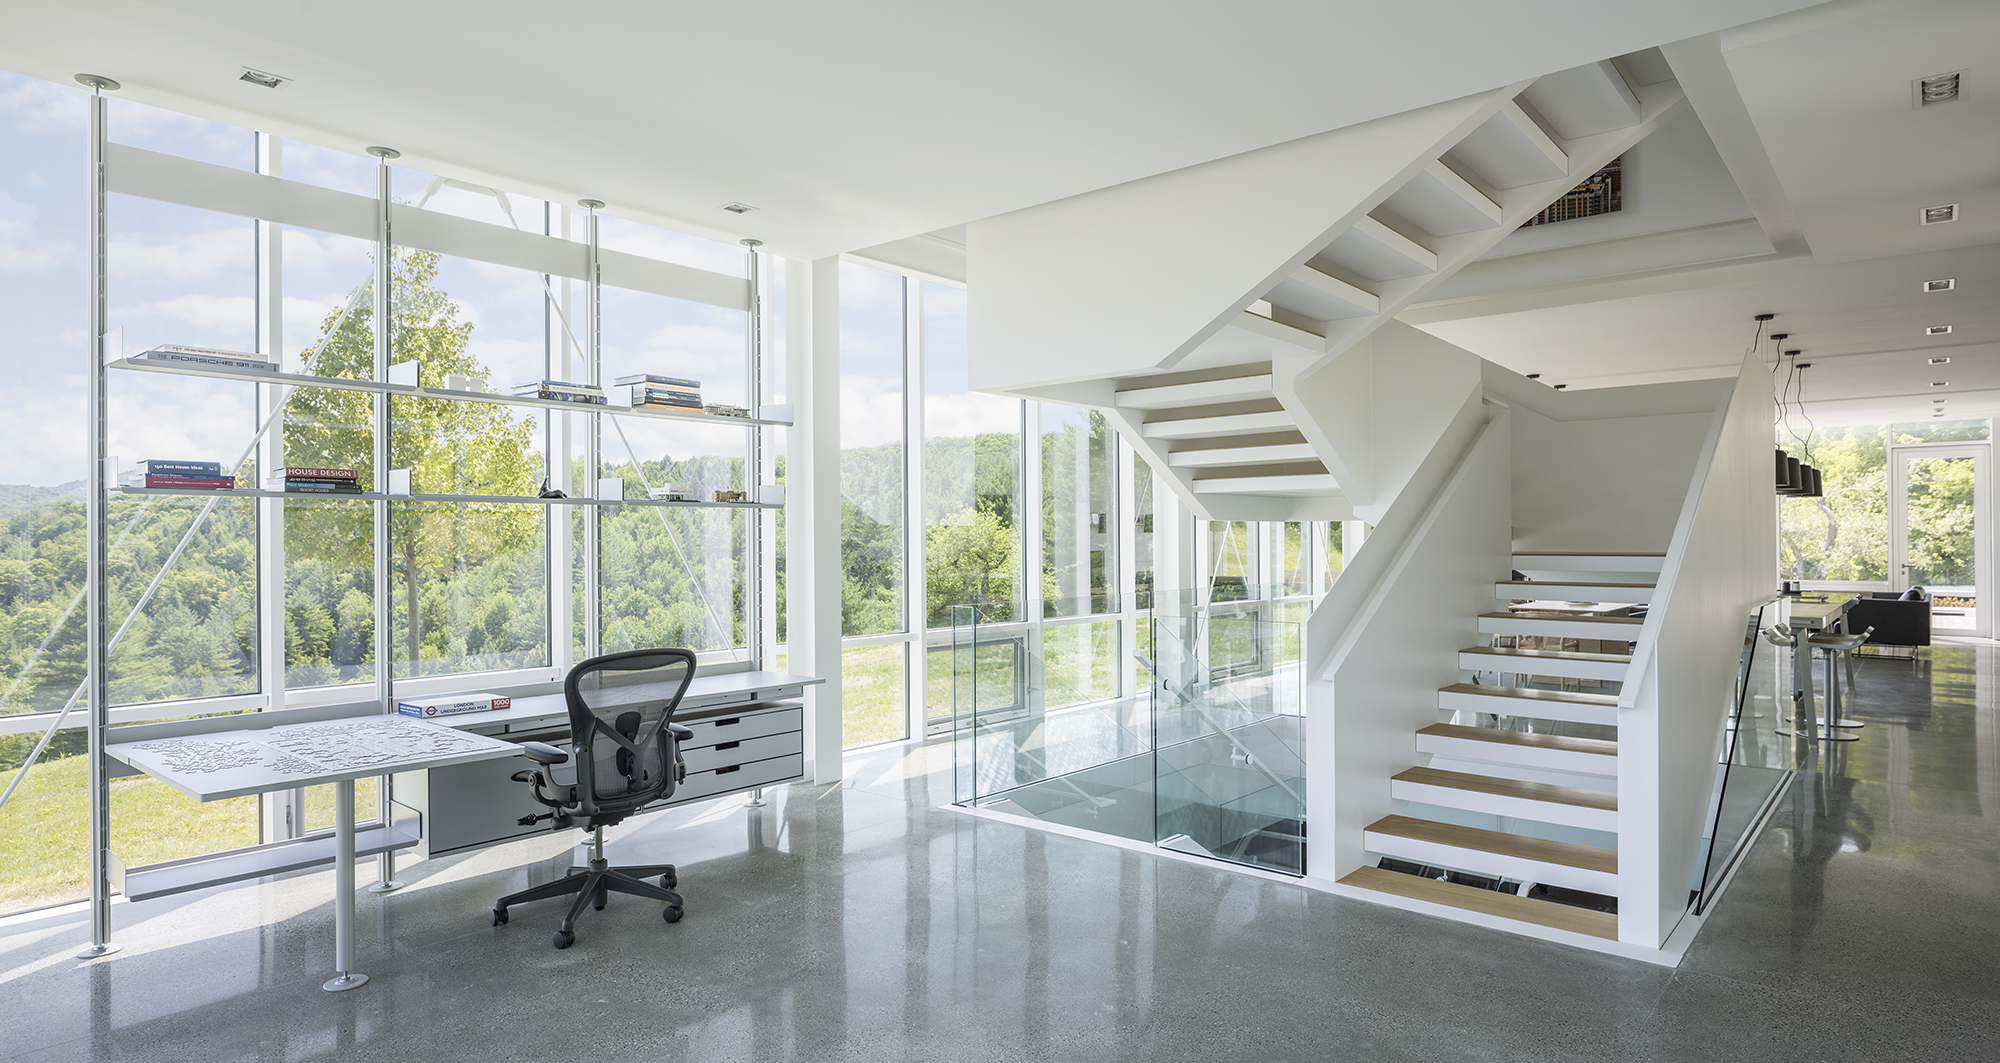 The staircase which connects all the floors sits at the venter of the house and has a very sculptural design